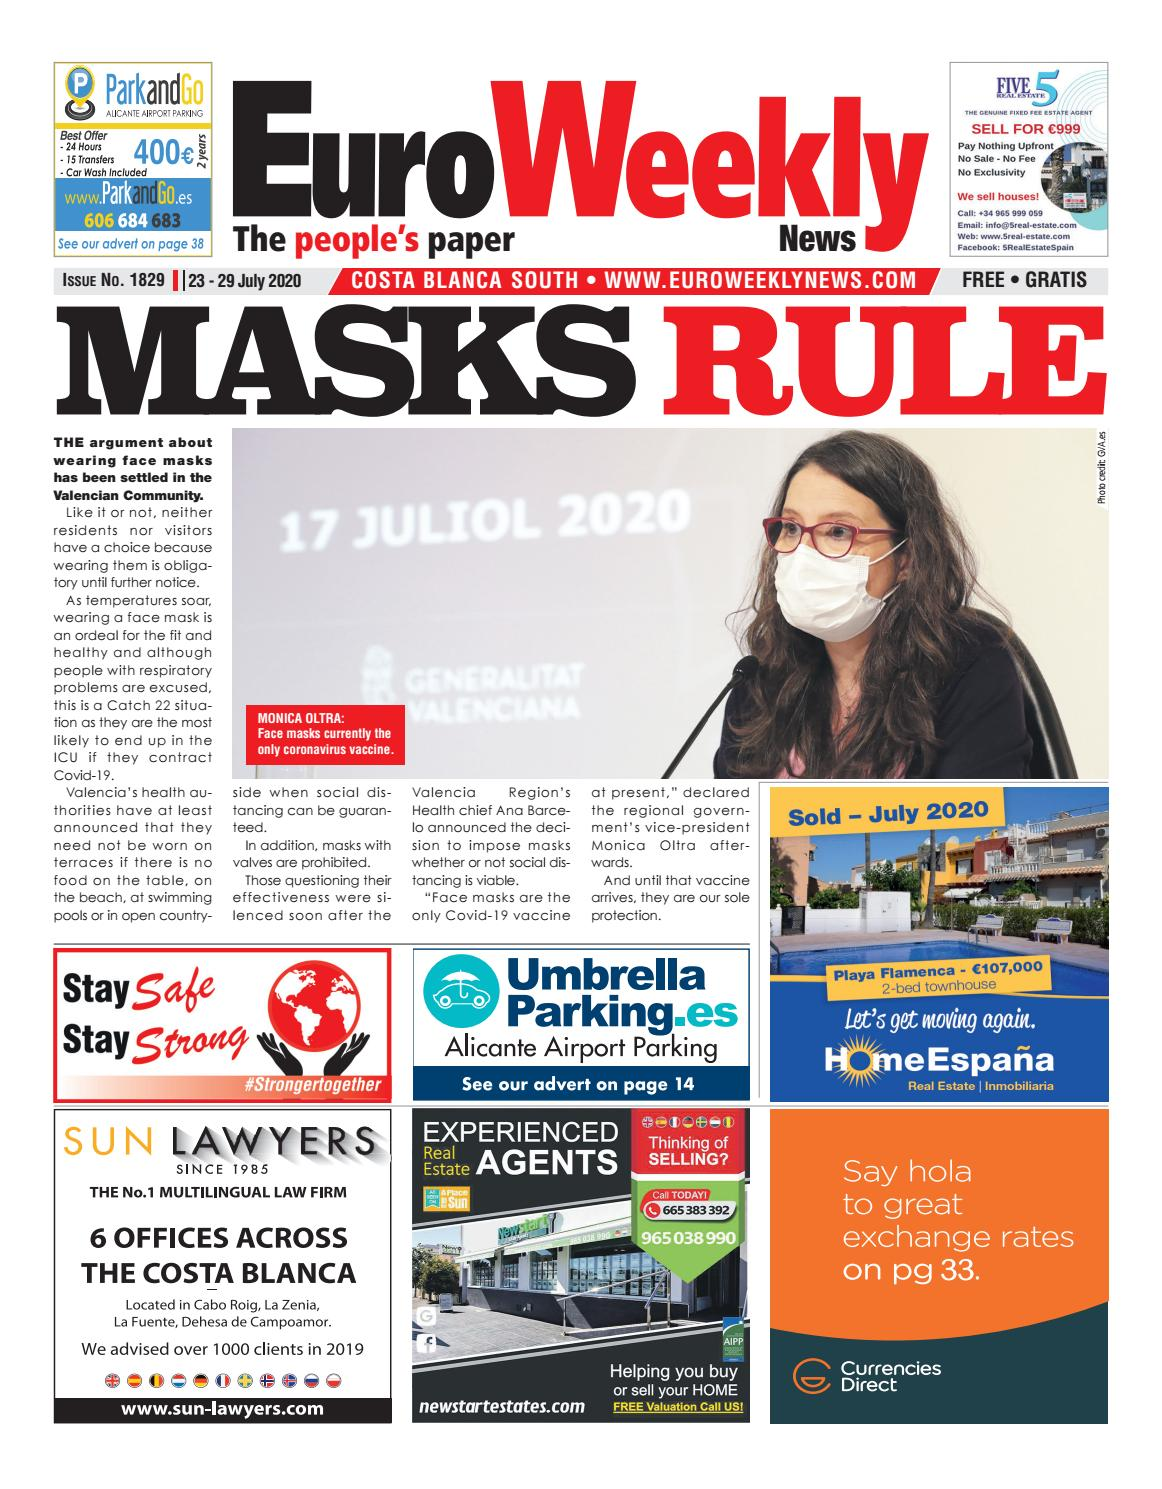 Euro Weekly News Costa Blanca South 7 13 March 2019 Issue 1757 By Euro Weekly News Media S A Issuu